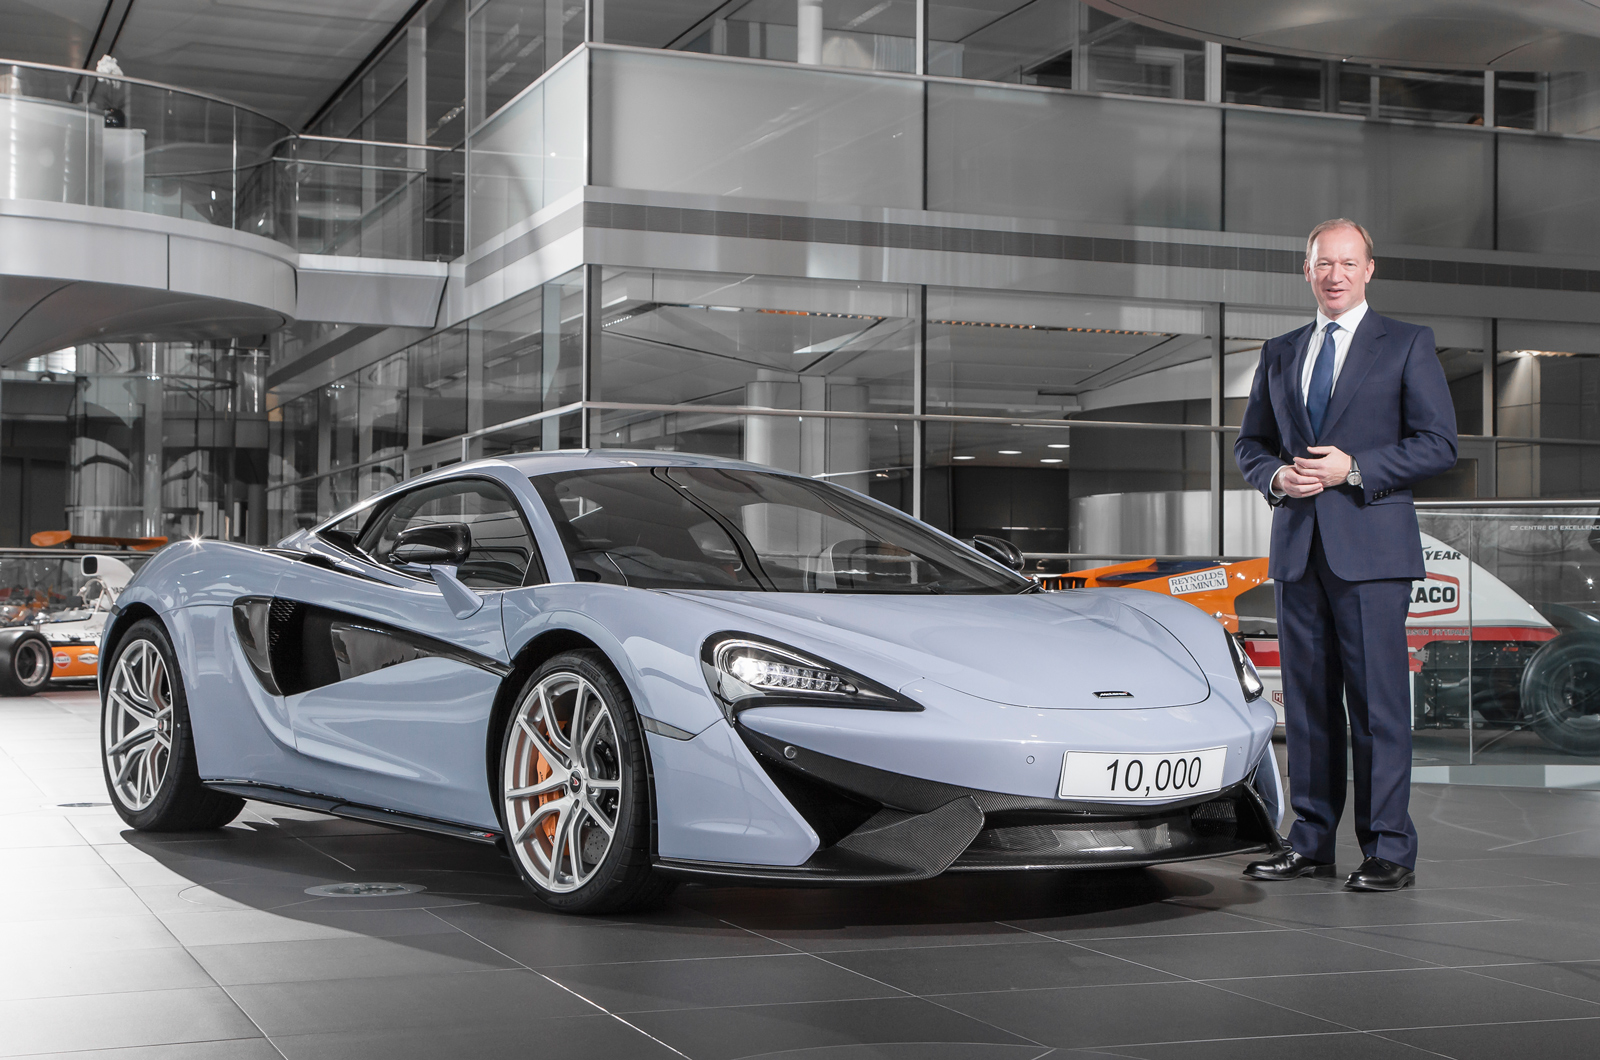 McLaren hits 10000 production milestone, on track for record year